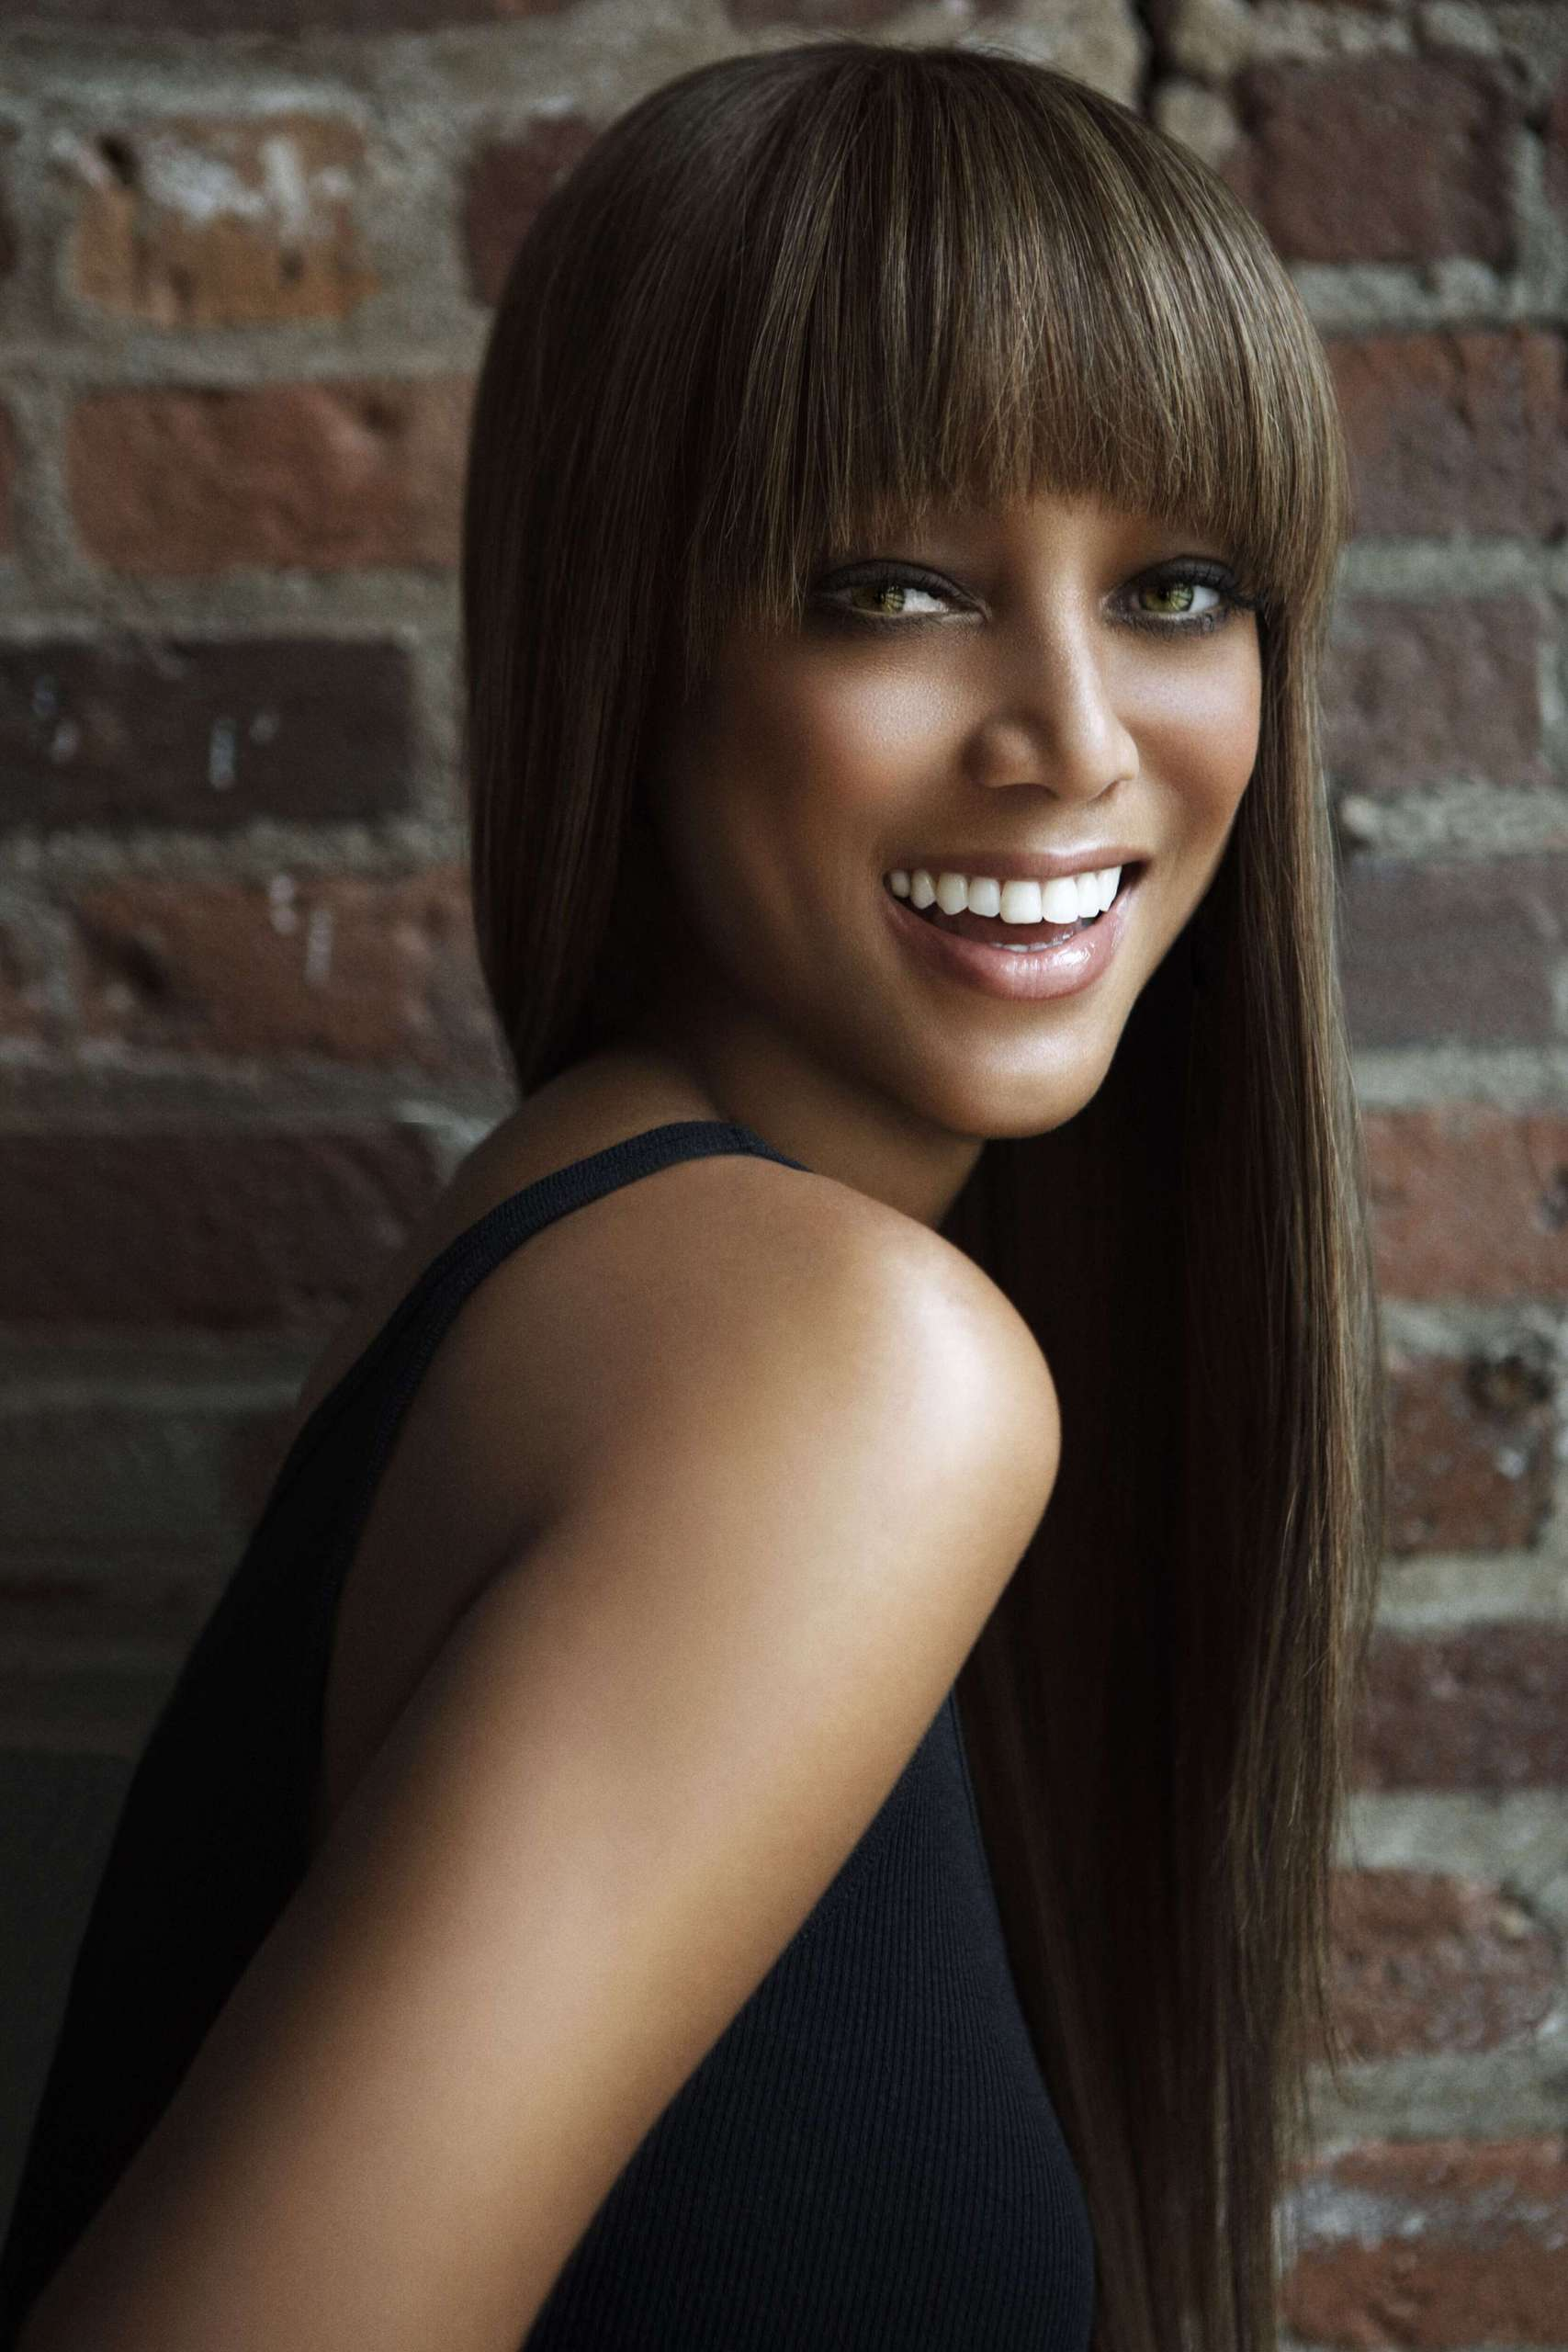 Tyra Banks - Images Actress